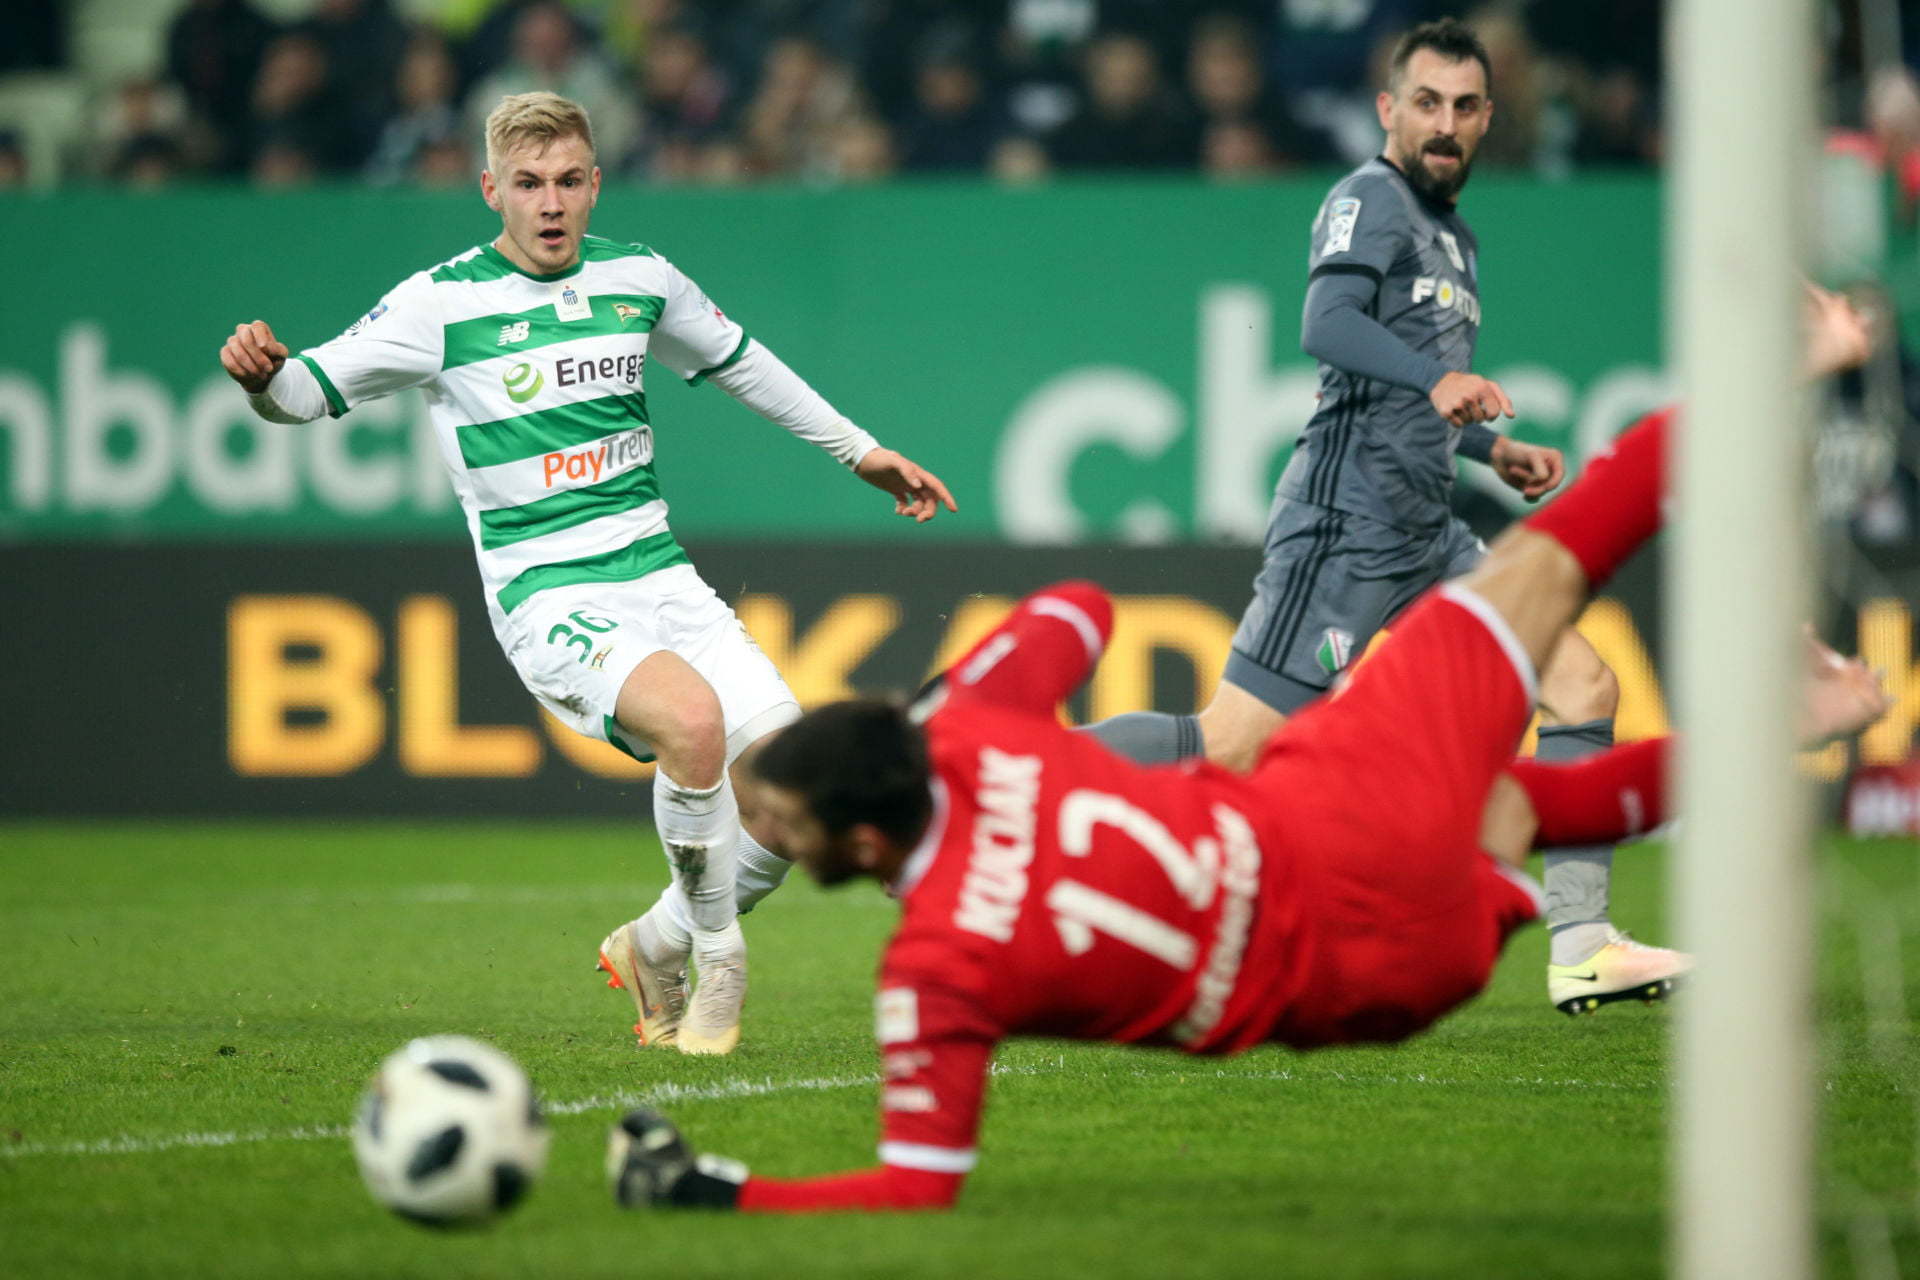 GDANSK 09.12.2018 MECZ 18. KOLEJKA LOTTO EKSTRAKLASA SEZON 2018/19: LECHIA GDANSK - LEGIA WARSZAWA --- POLISH FOOTBALL TOP LEAGUE MATCH: LECHIA GDANSK - LEGIA WARSAW TOMASZ MAKOWSKI DUSAN KUCIAK MICHAL KUCHARCZYK FOT. PIOTR KUCZA/ 400mm.pl